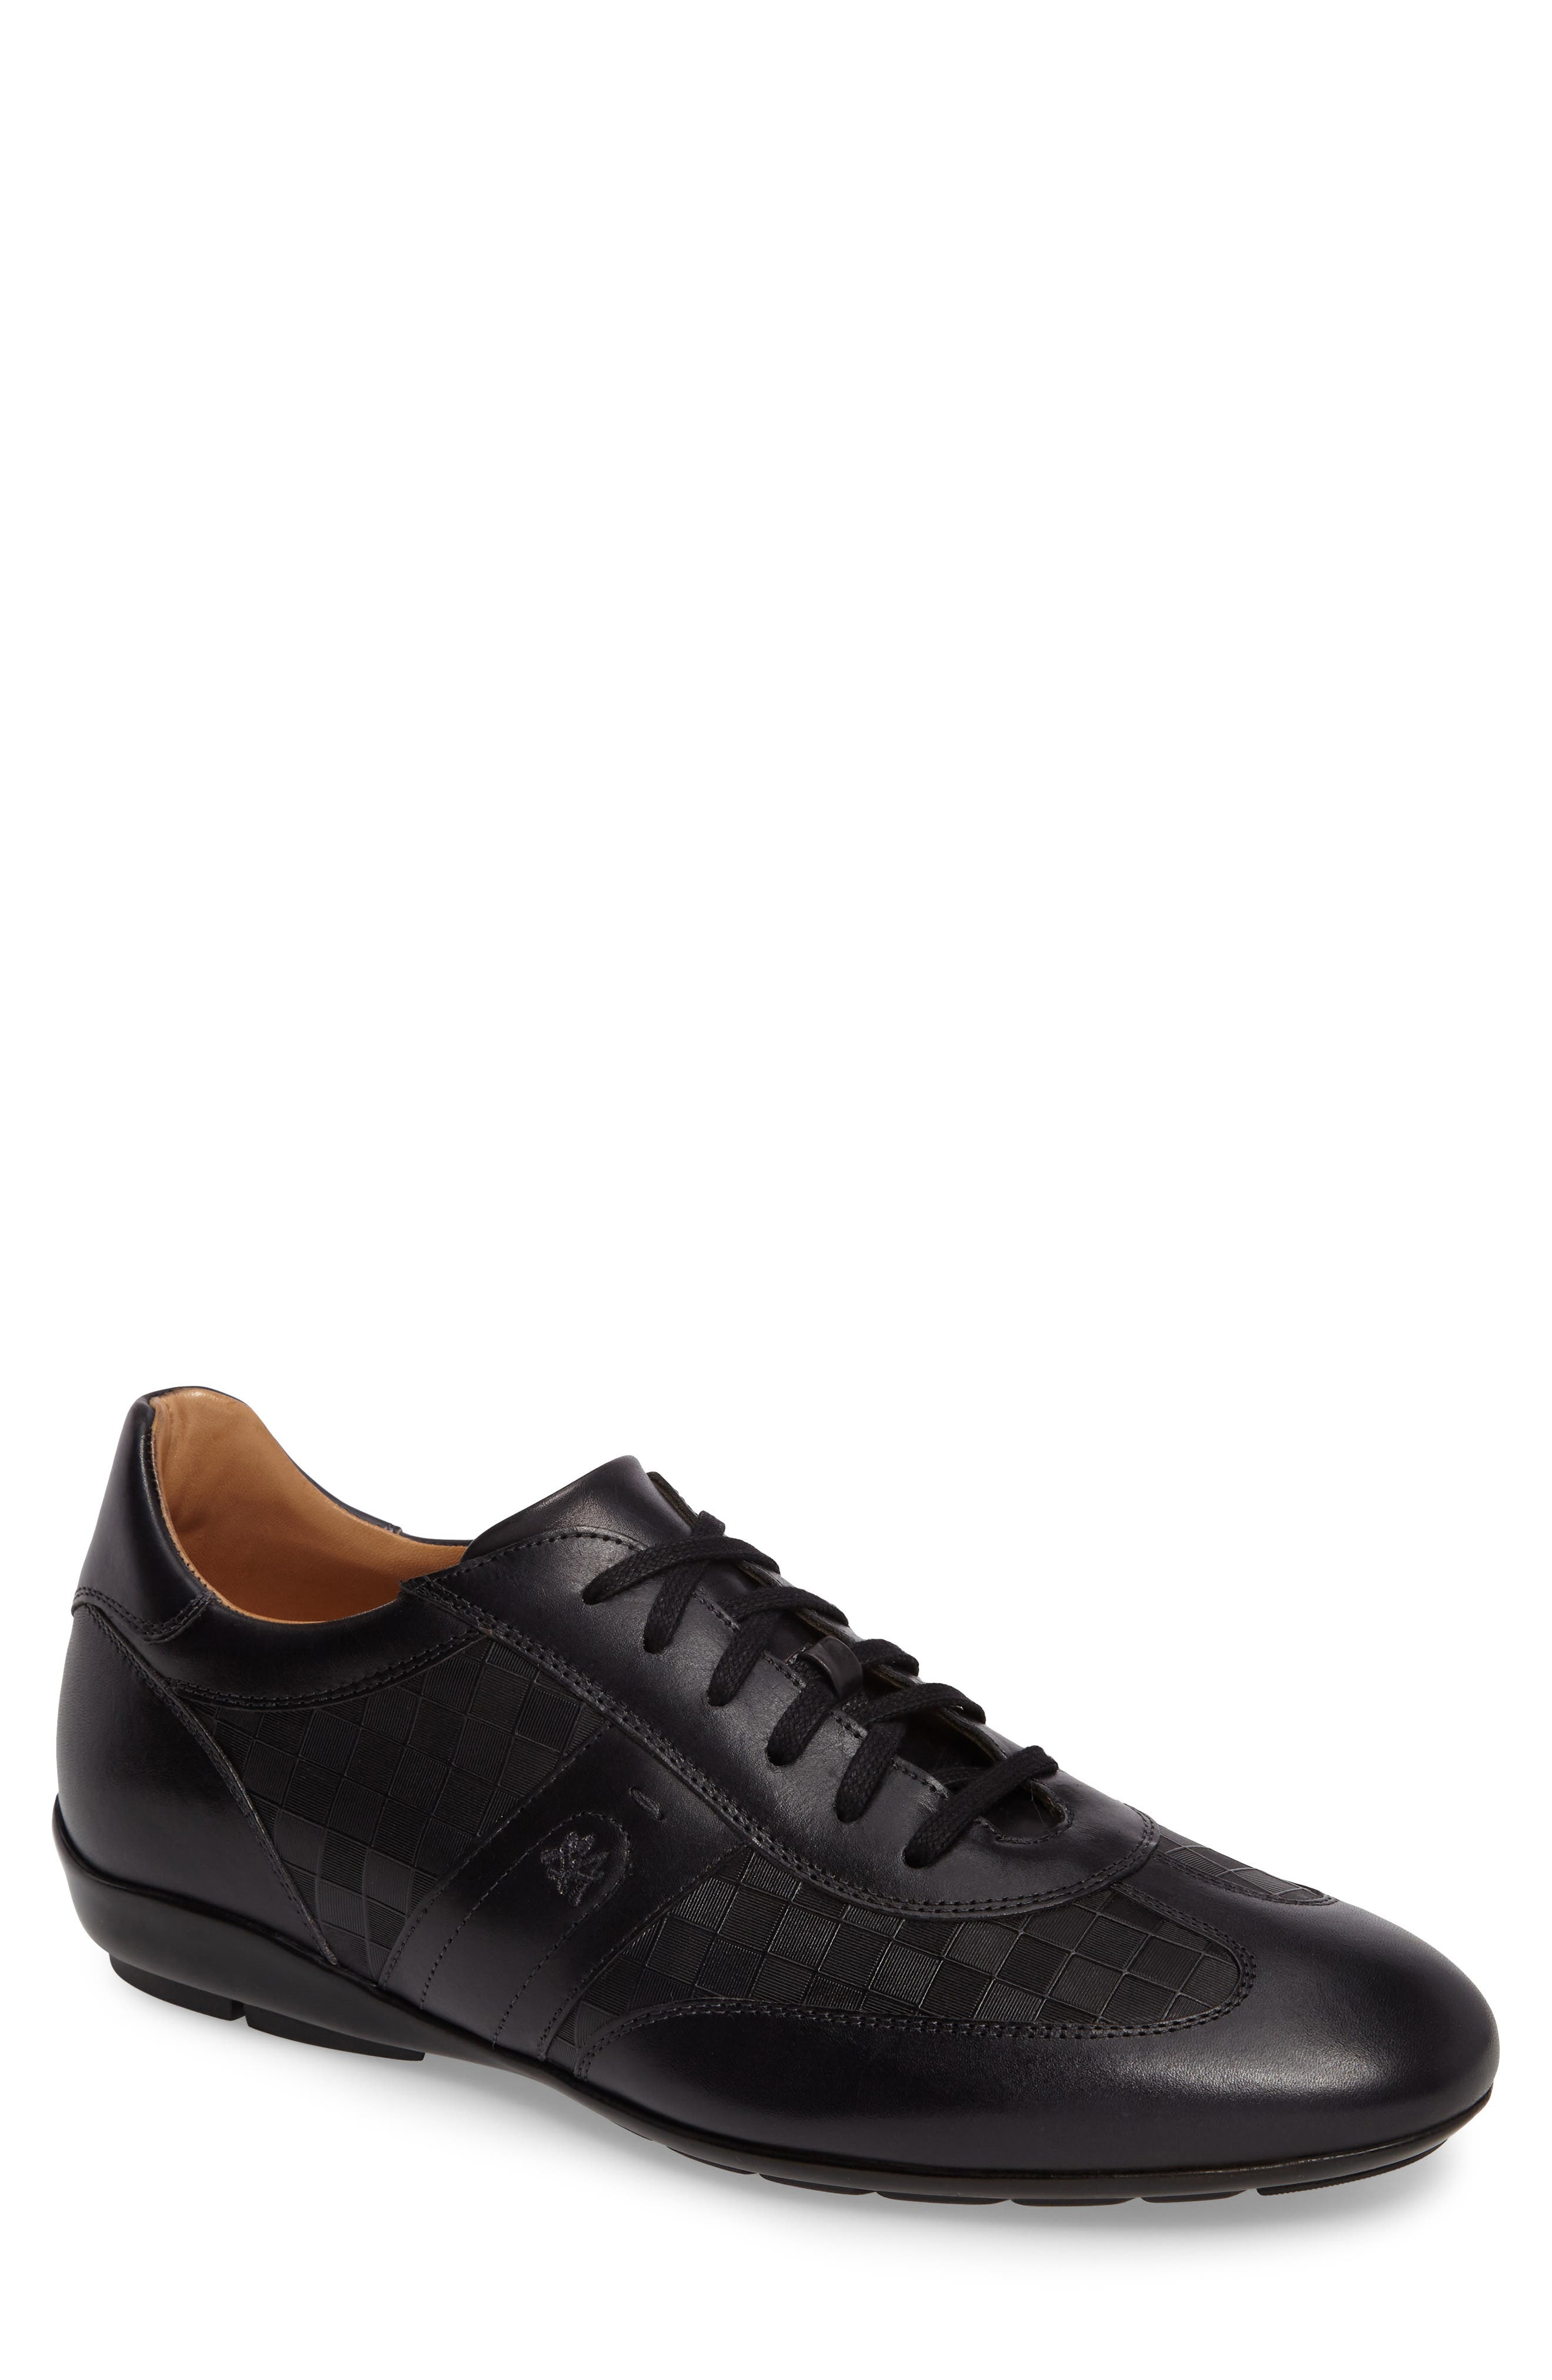 Baena Sneaker in Black Leather